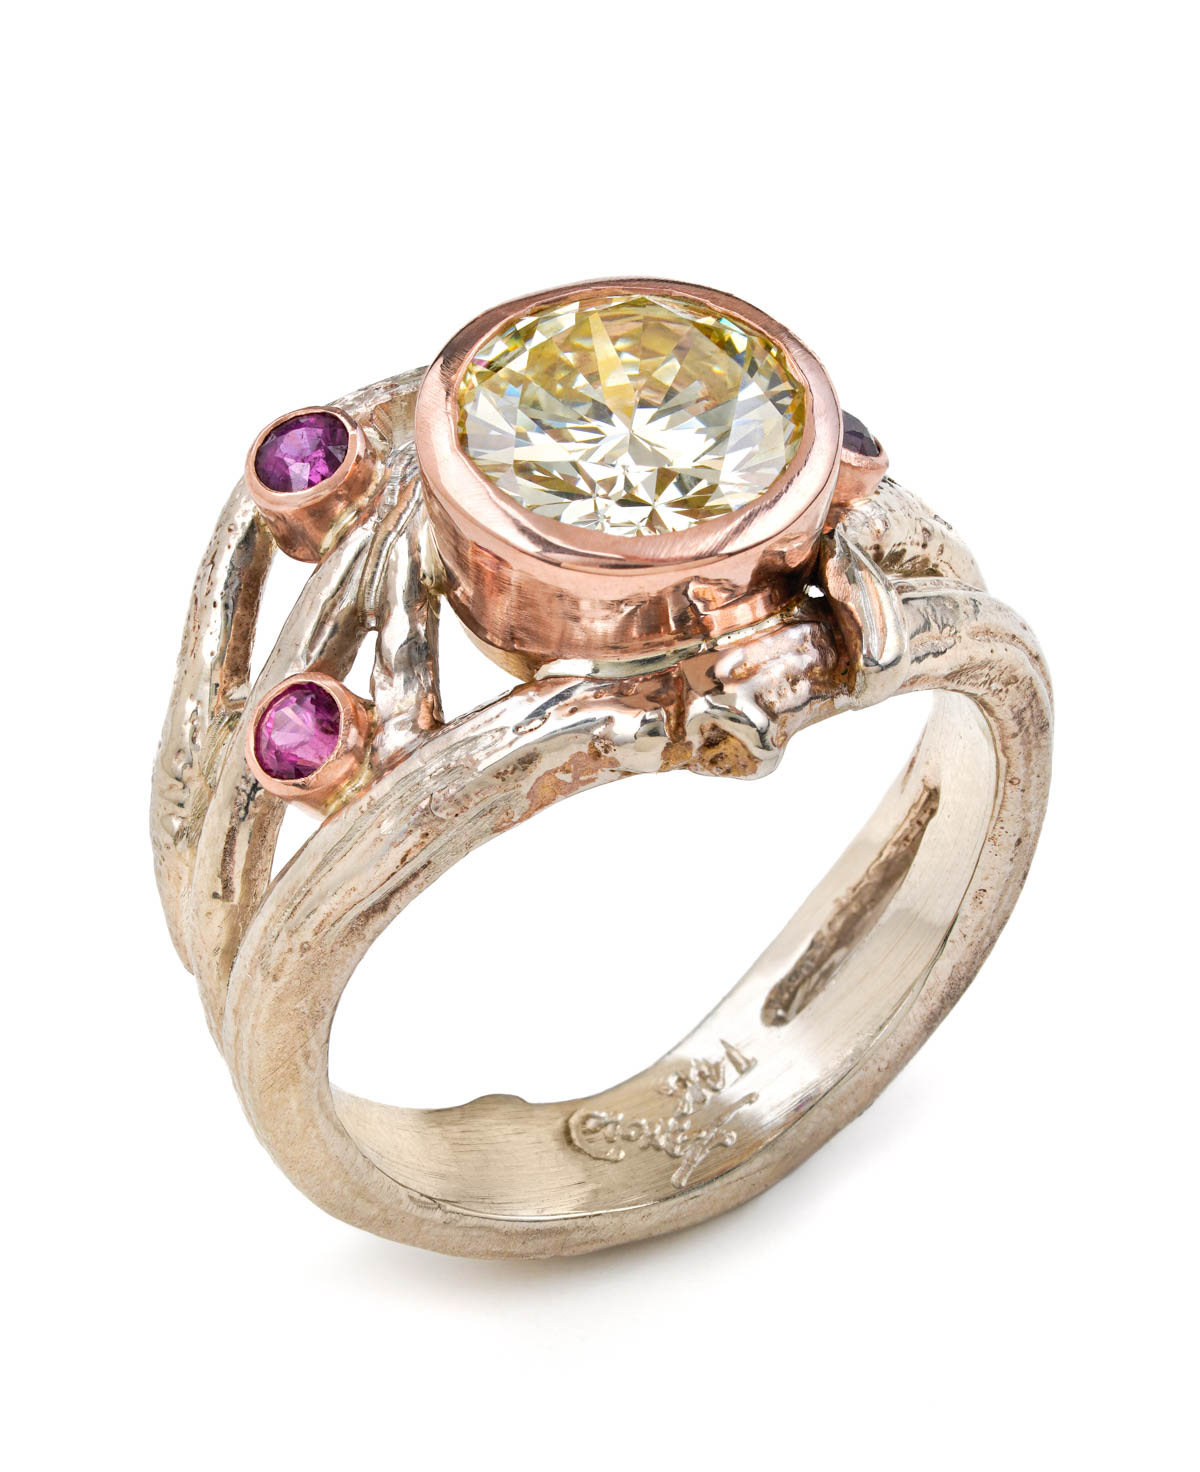 ring made by feature artist